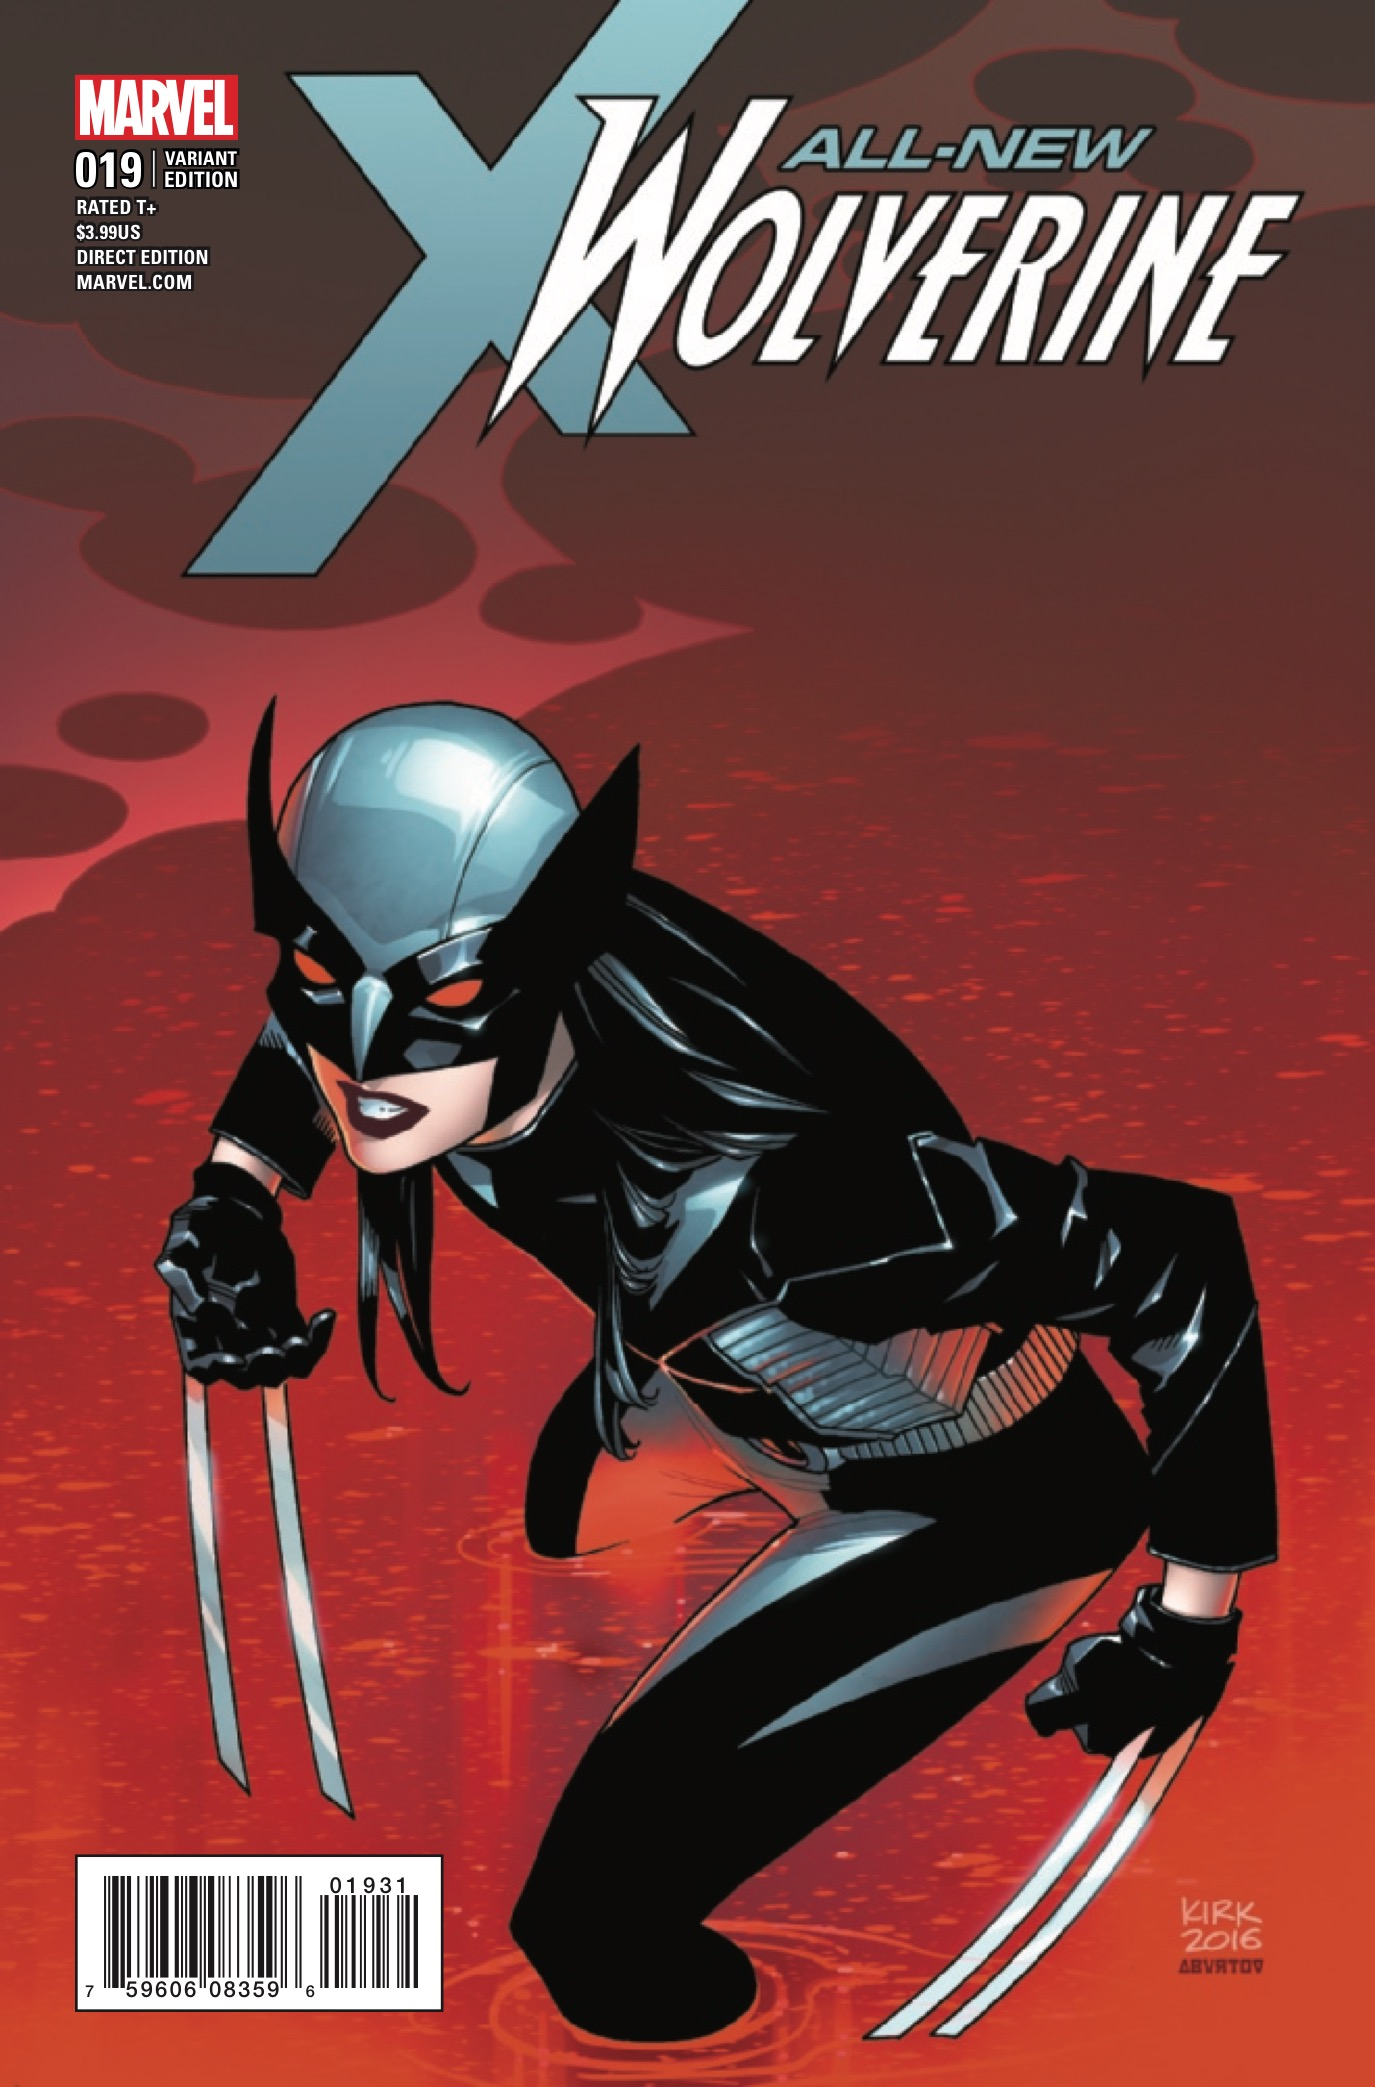 All-New Wolverine #19 Review